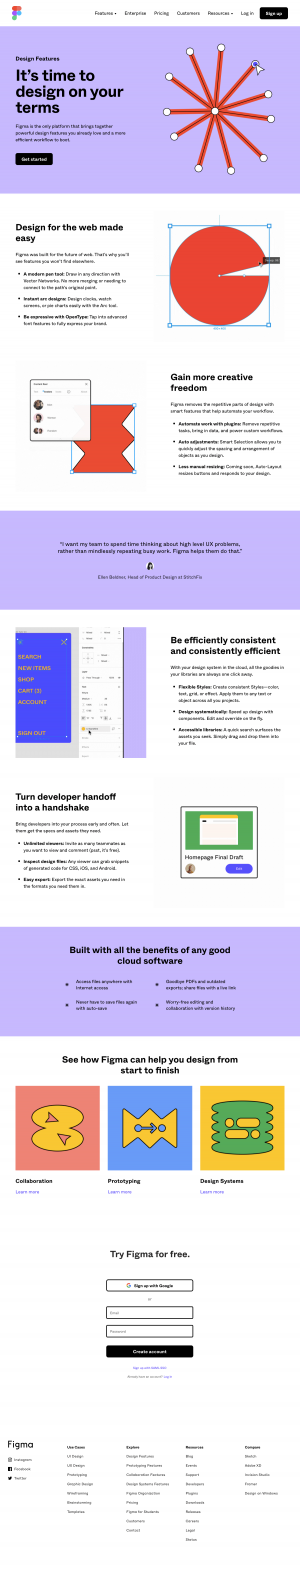 Figma - Features page 1